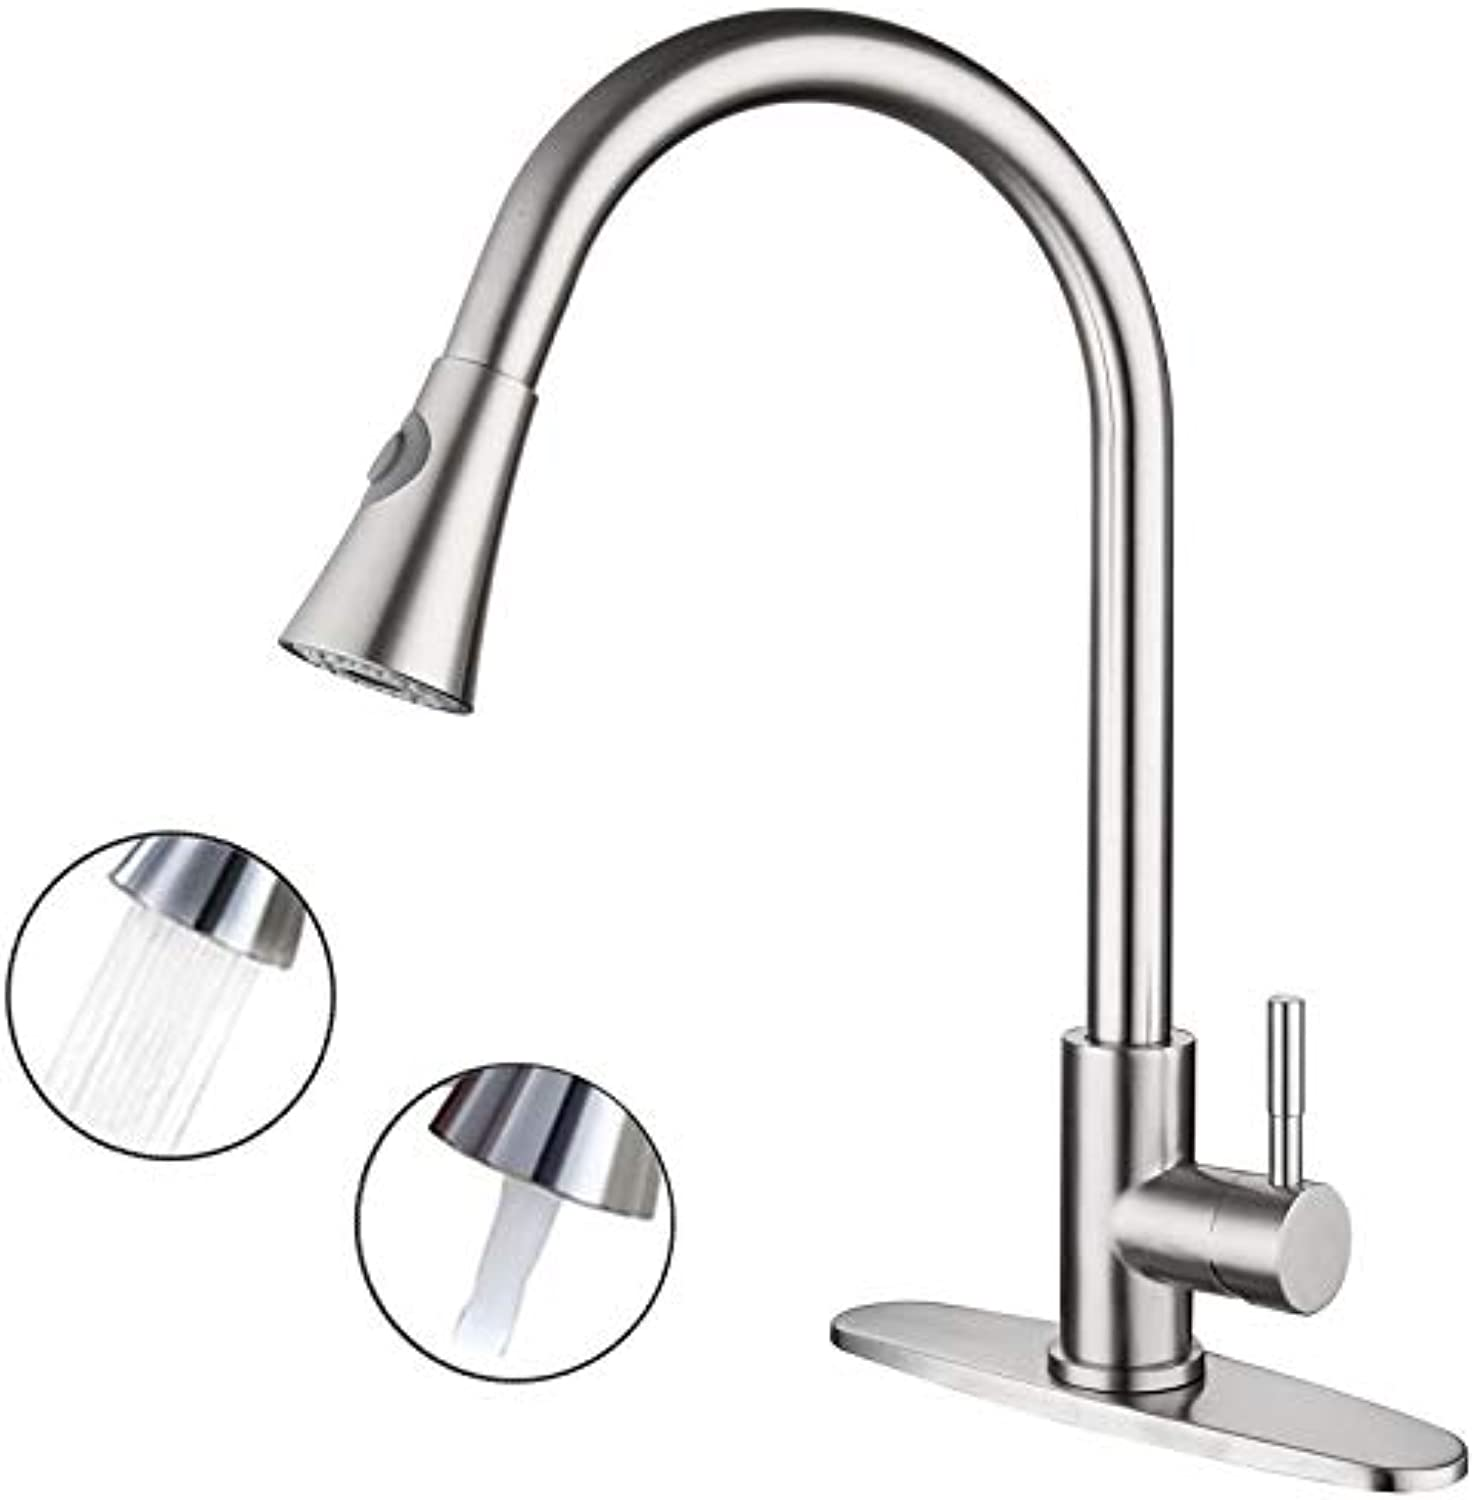 304 Stainless Steel Pull-Out Kitchen tap Vegetable Basin Sink redating Drawing tap